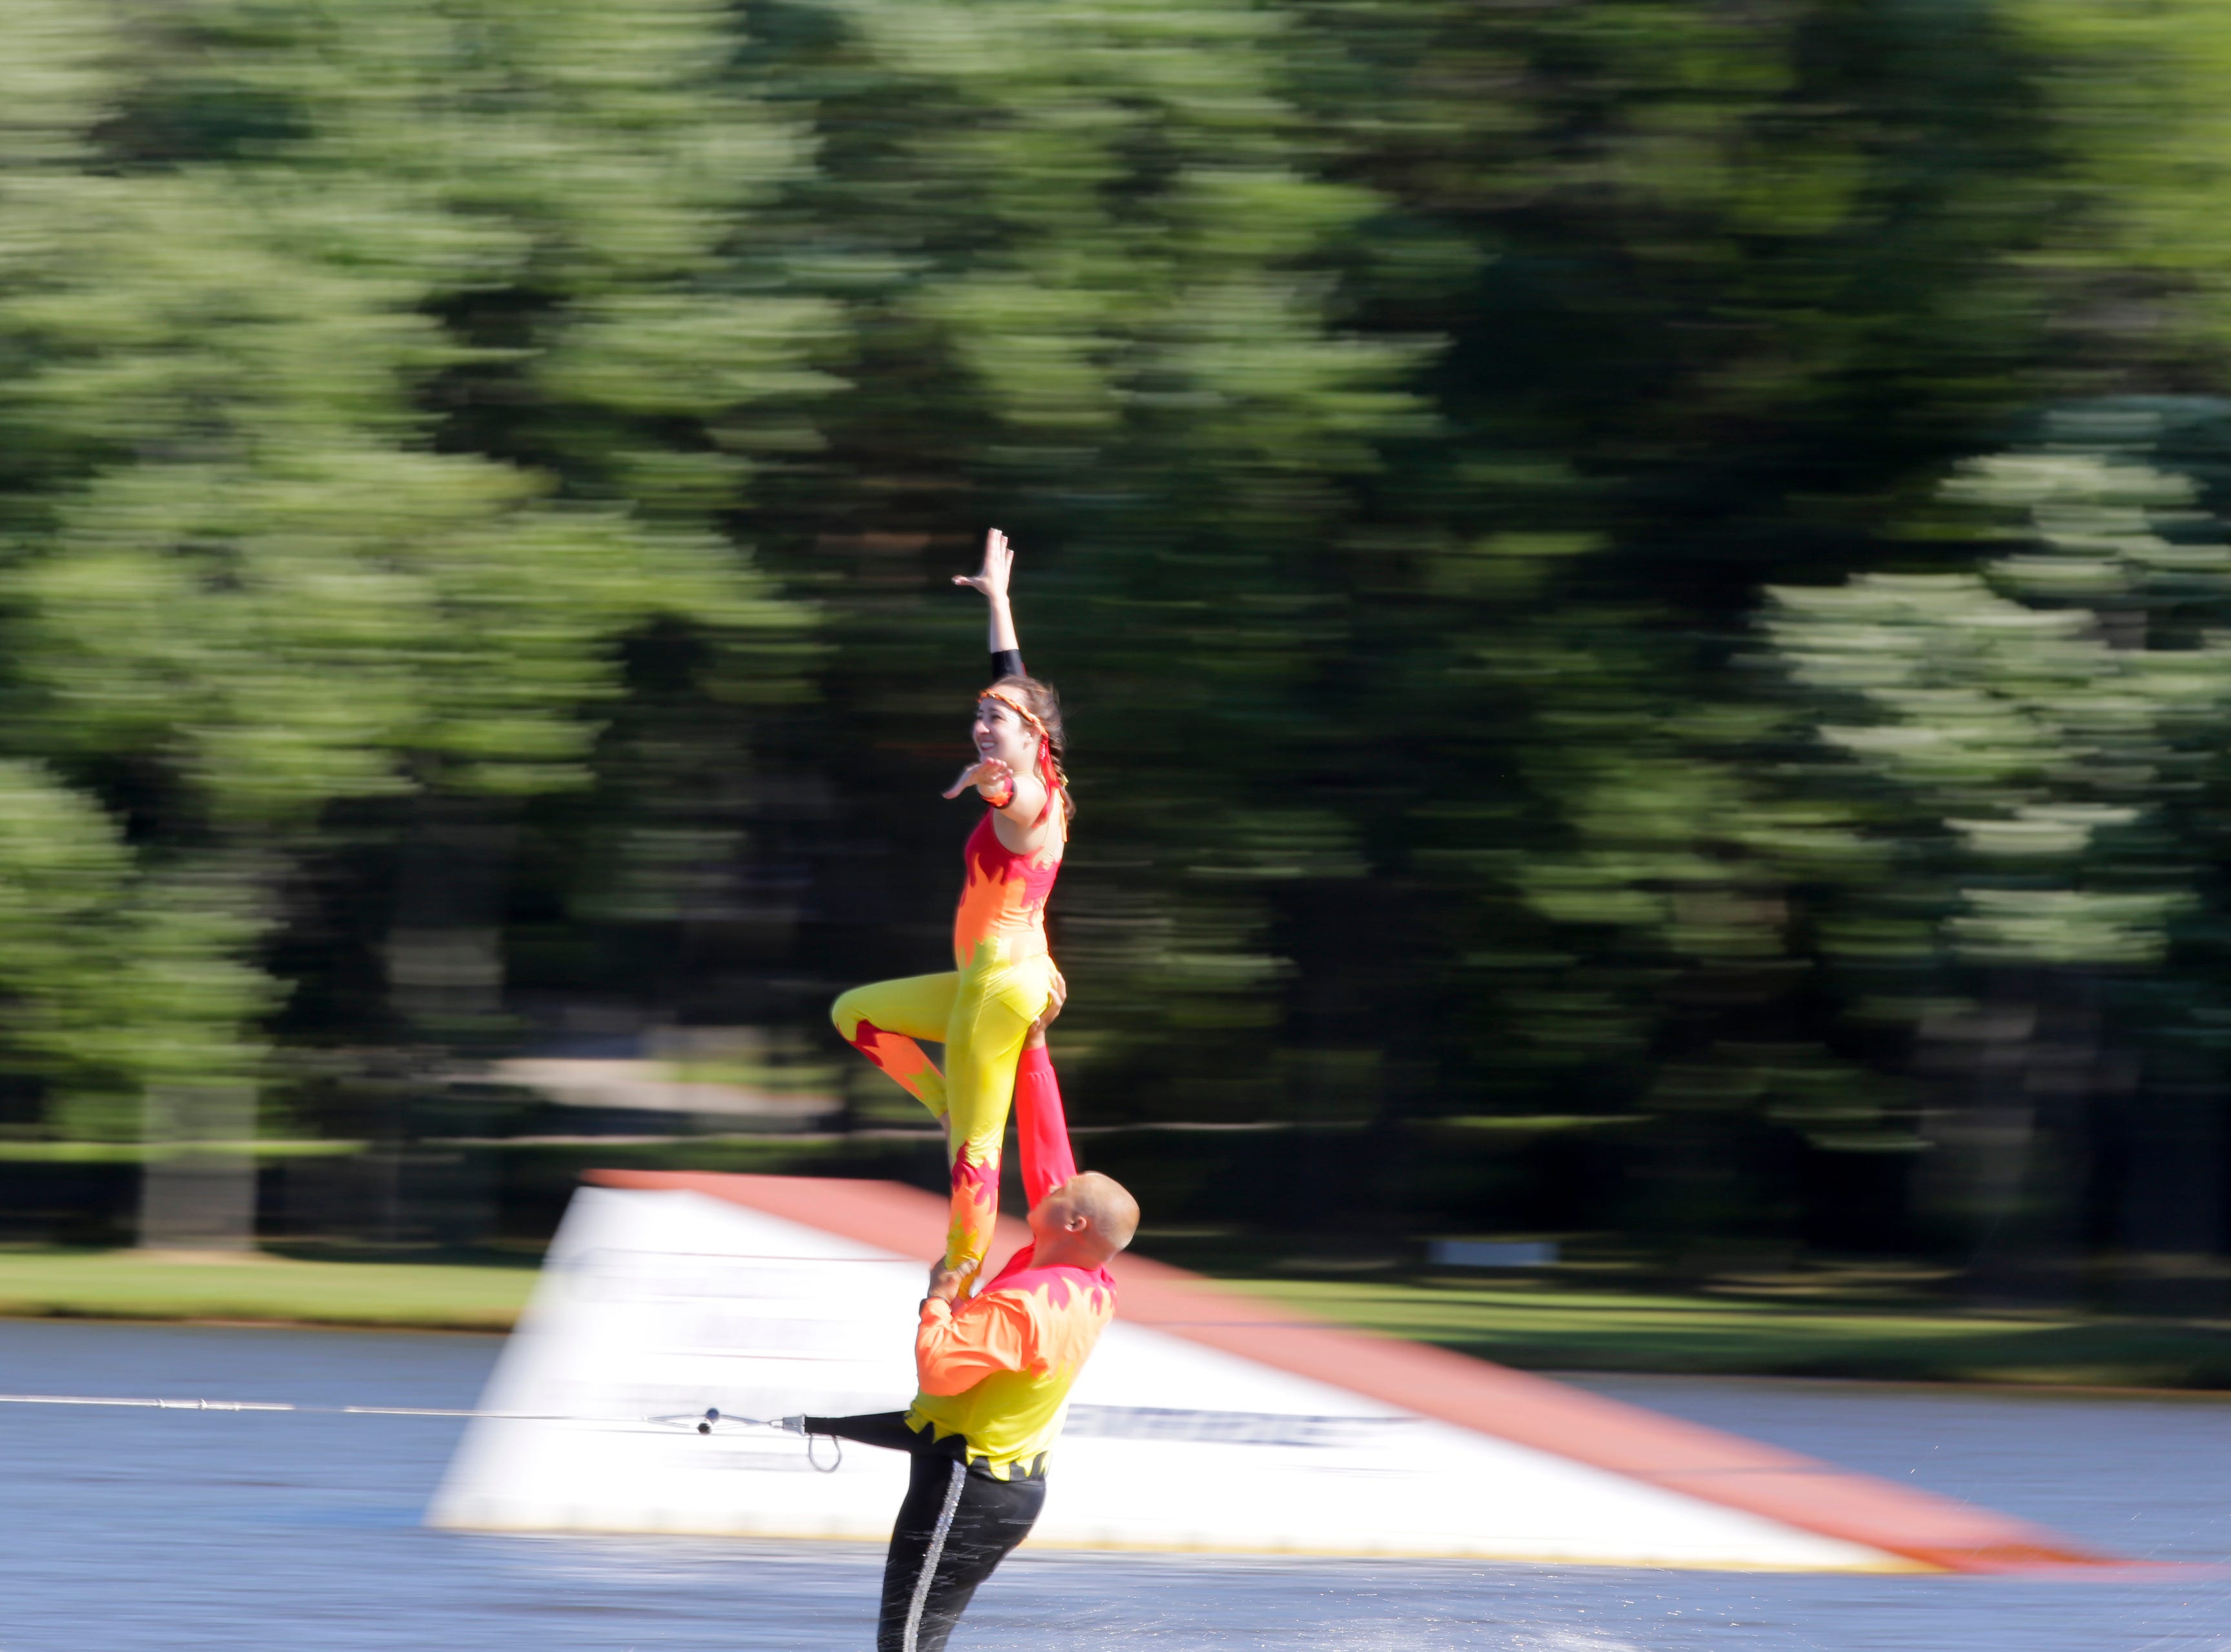 Ben and Hannah Walker compete in the doubles category during the Wisconsin State Water Ski Show Championships on Lake Wazeecha in Kellner Thursday, July 19, 2018.